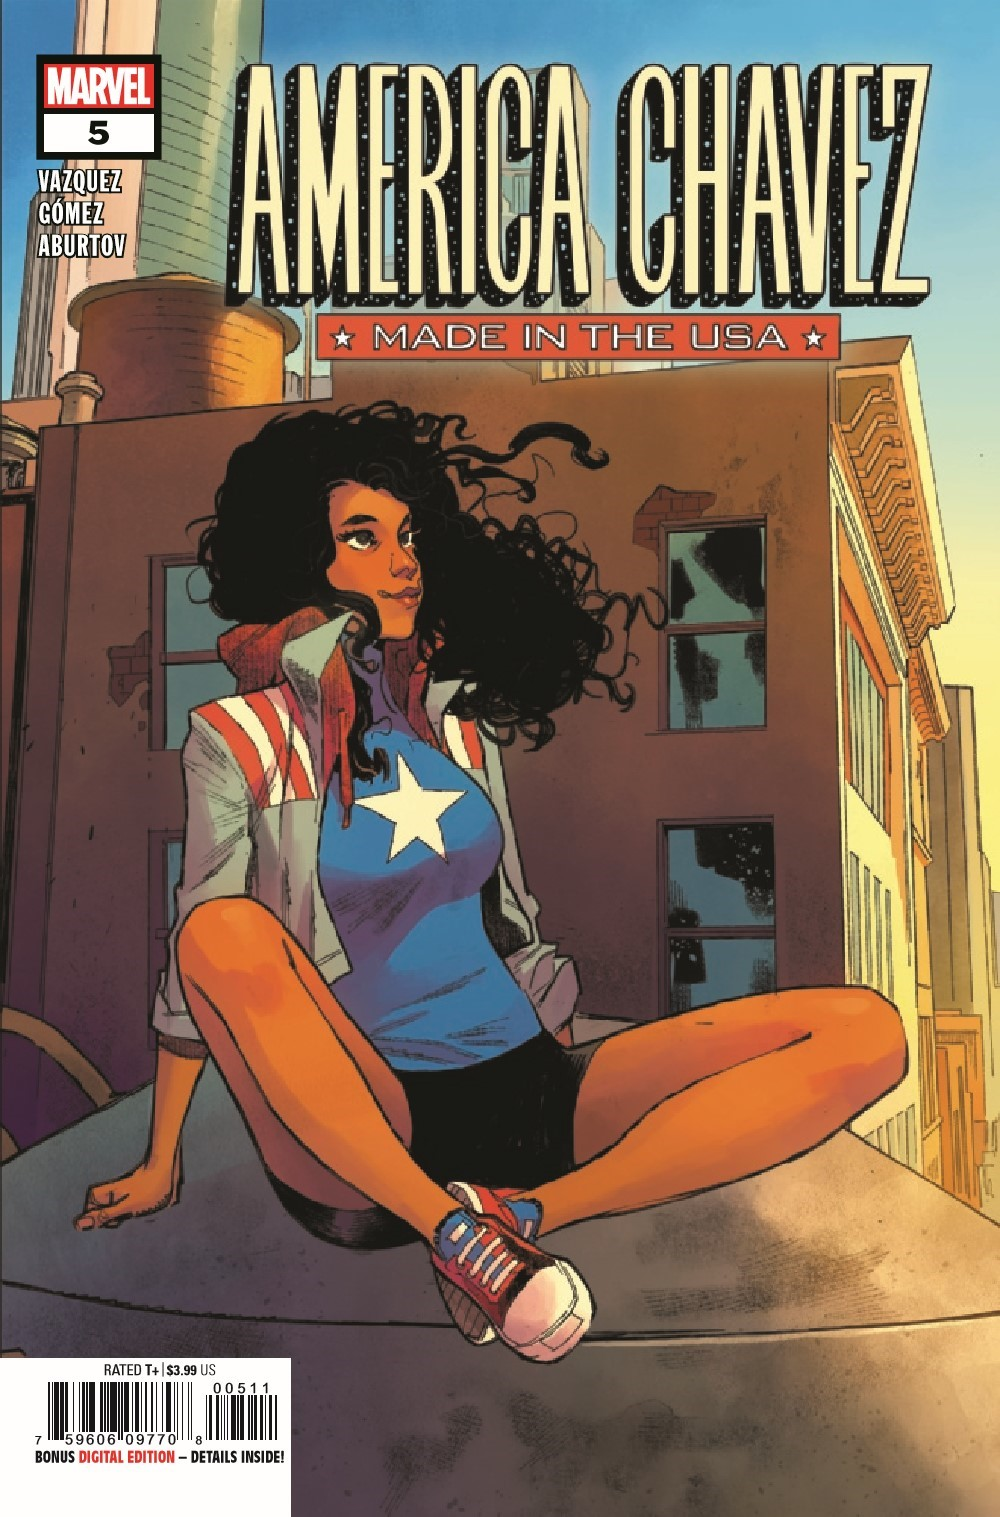 AMERCHAVEZUSA2021005_Preview-1 ComicList Previews: AMERICA CHAVEZ MADE IN THE U.S.A. #5 (OF 5)